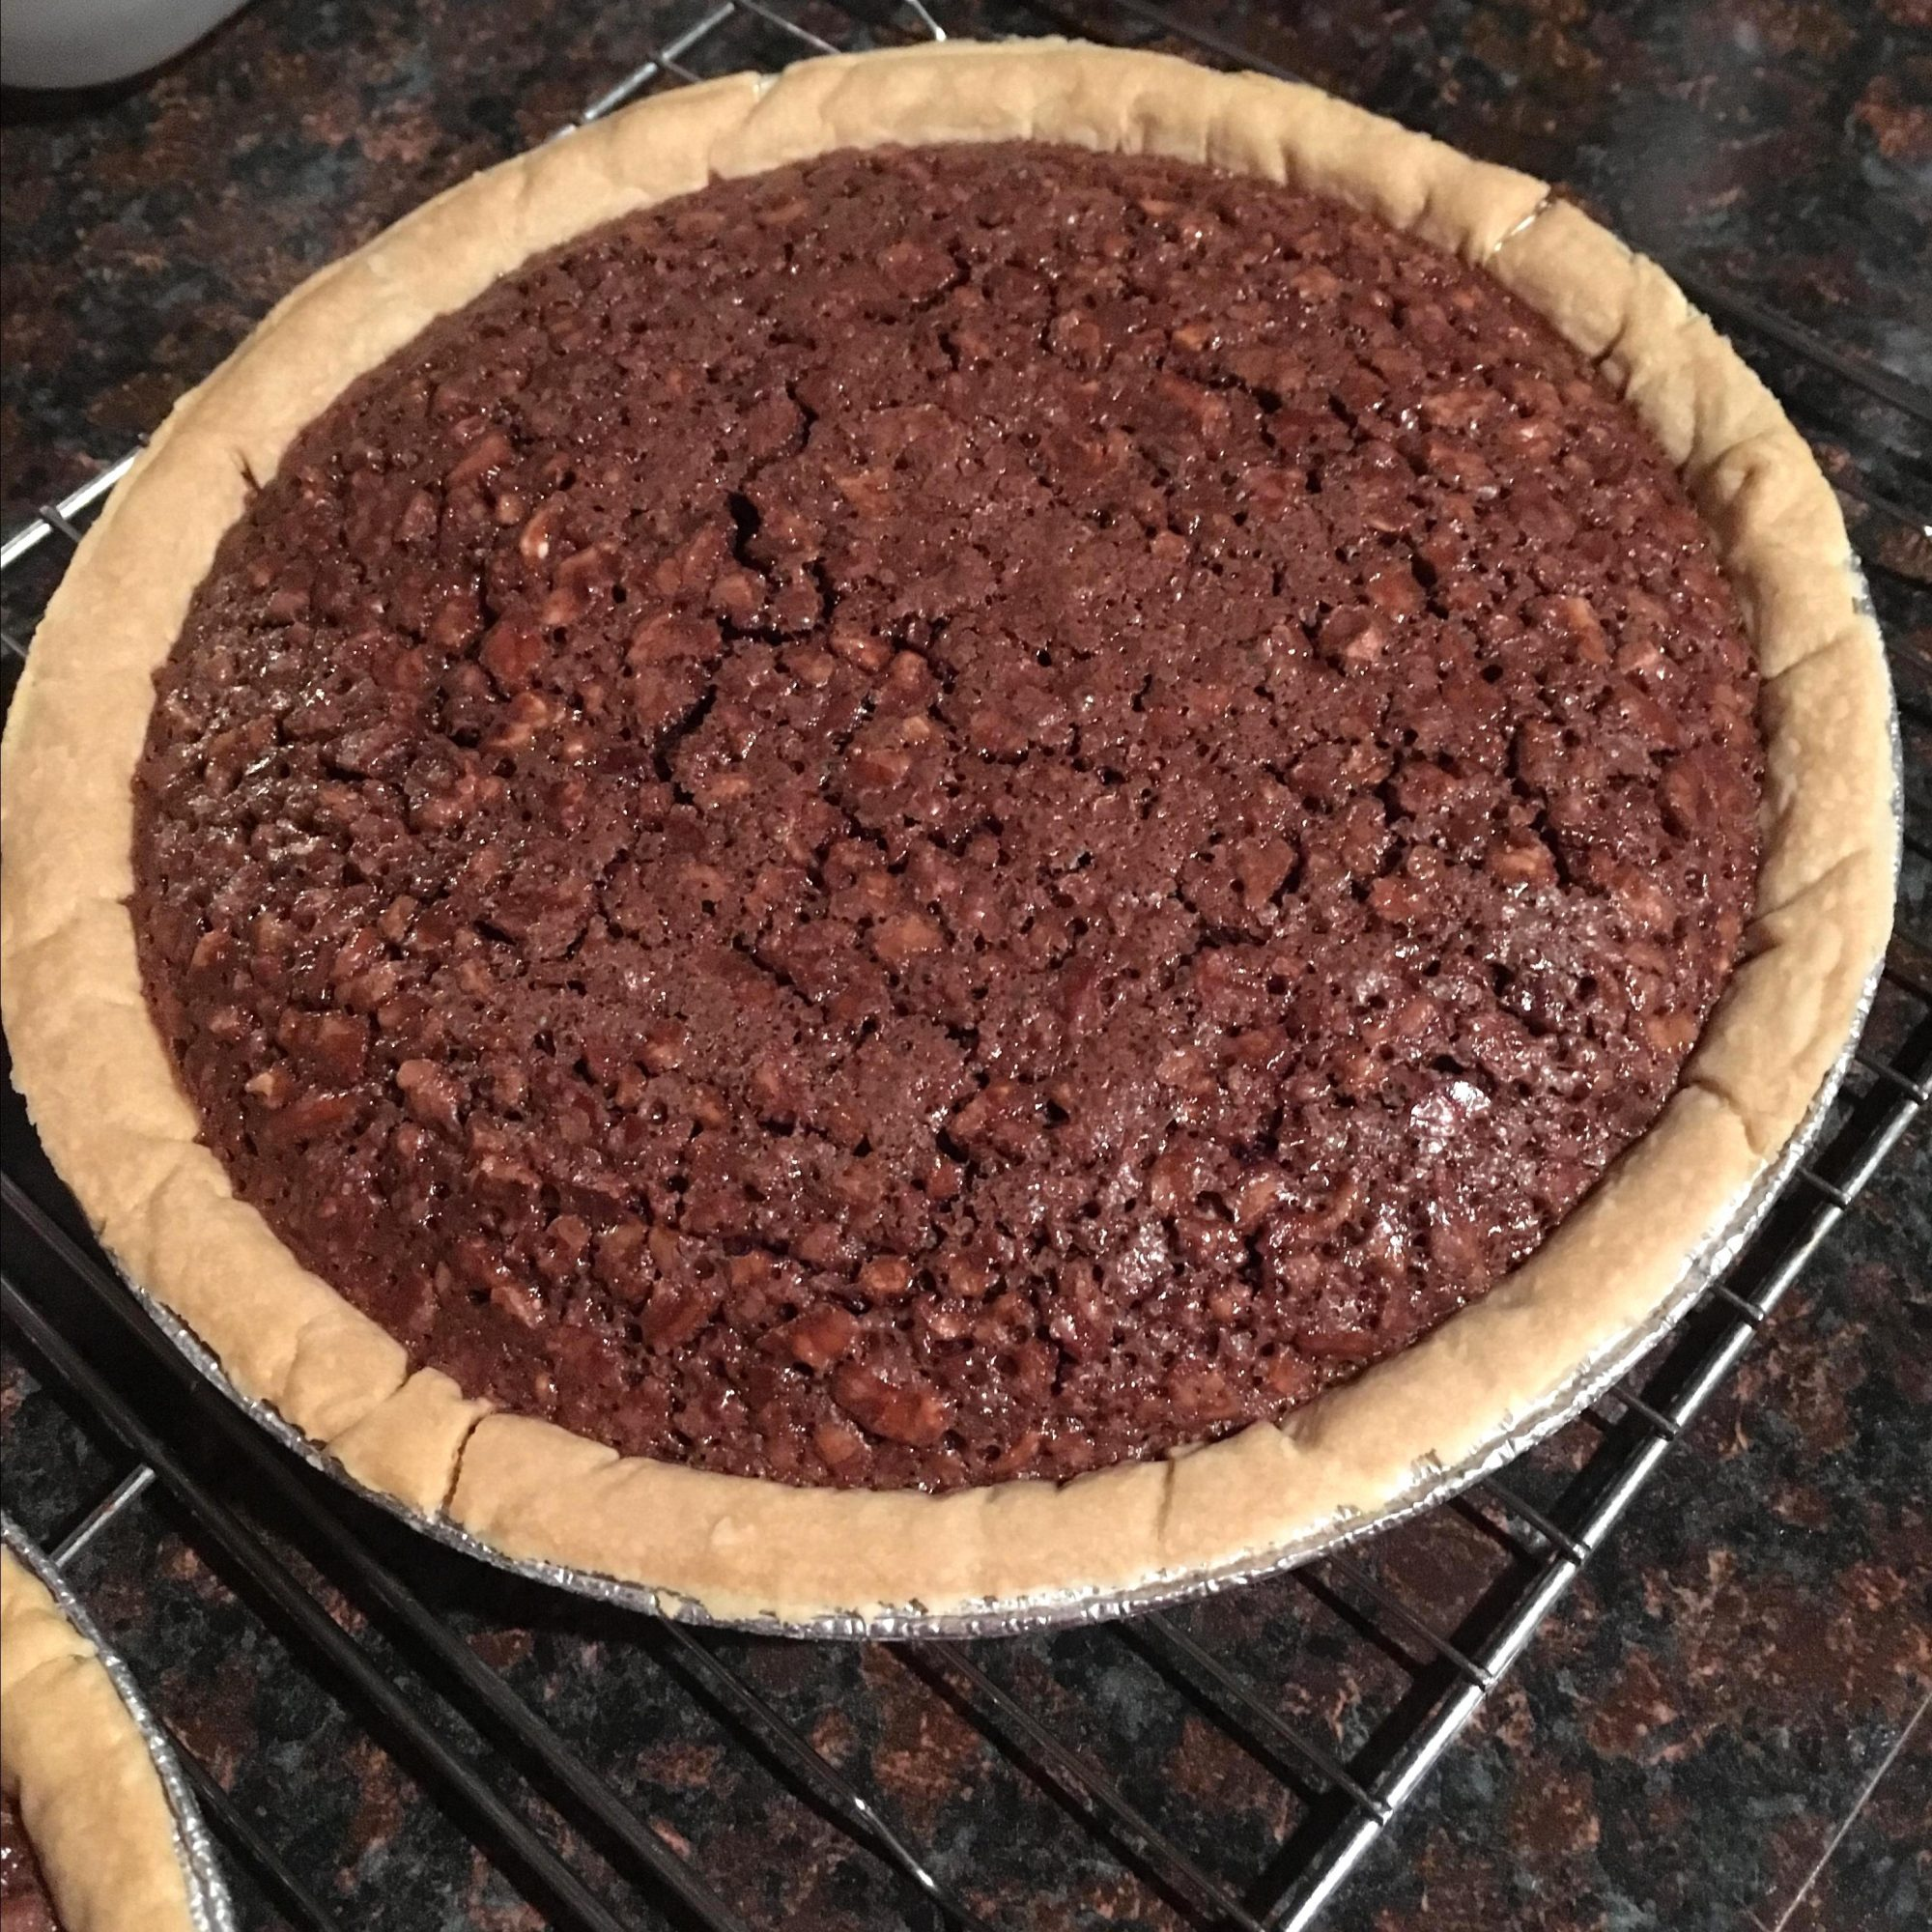 """""""I never had Fudge Pie until I moved to Tennessee. A friend from church gave me this exact same recipe. I did have a deep-dish pie shell, and so I scaled the servings to 12, and it worked wonderfully! My husband and I loved it. This is going in the old recipe file to hand down to my daughters!"""" — srevels"""